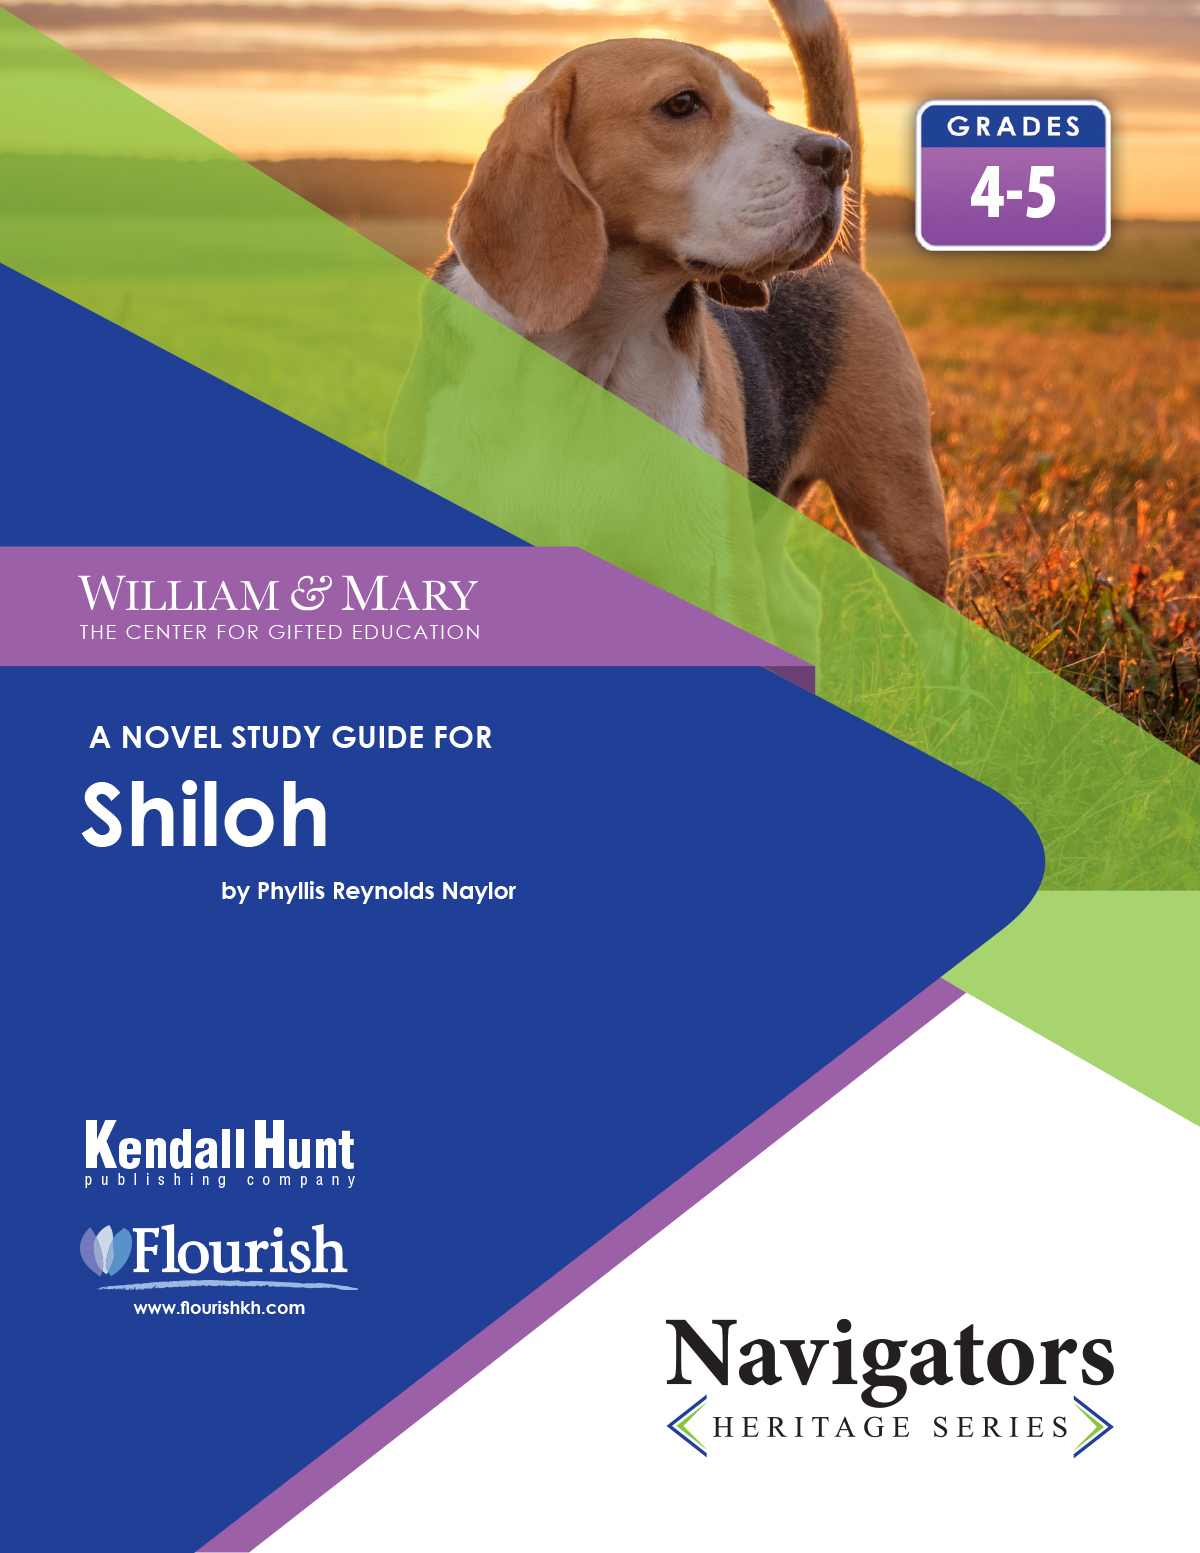 William & Mary Navigator Shiloh